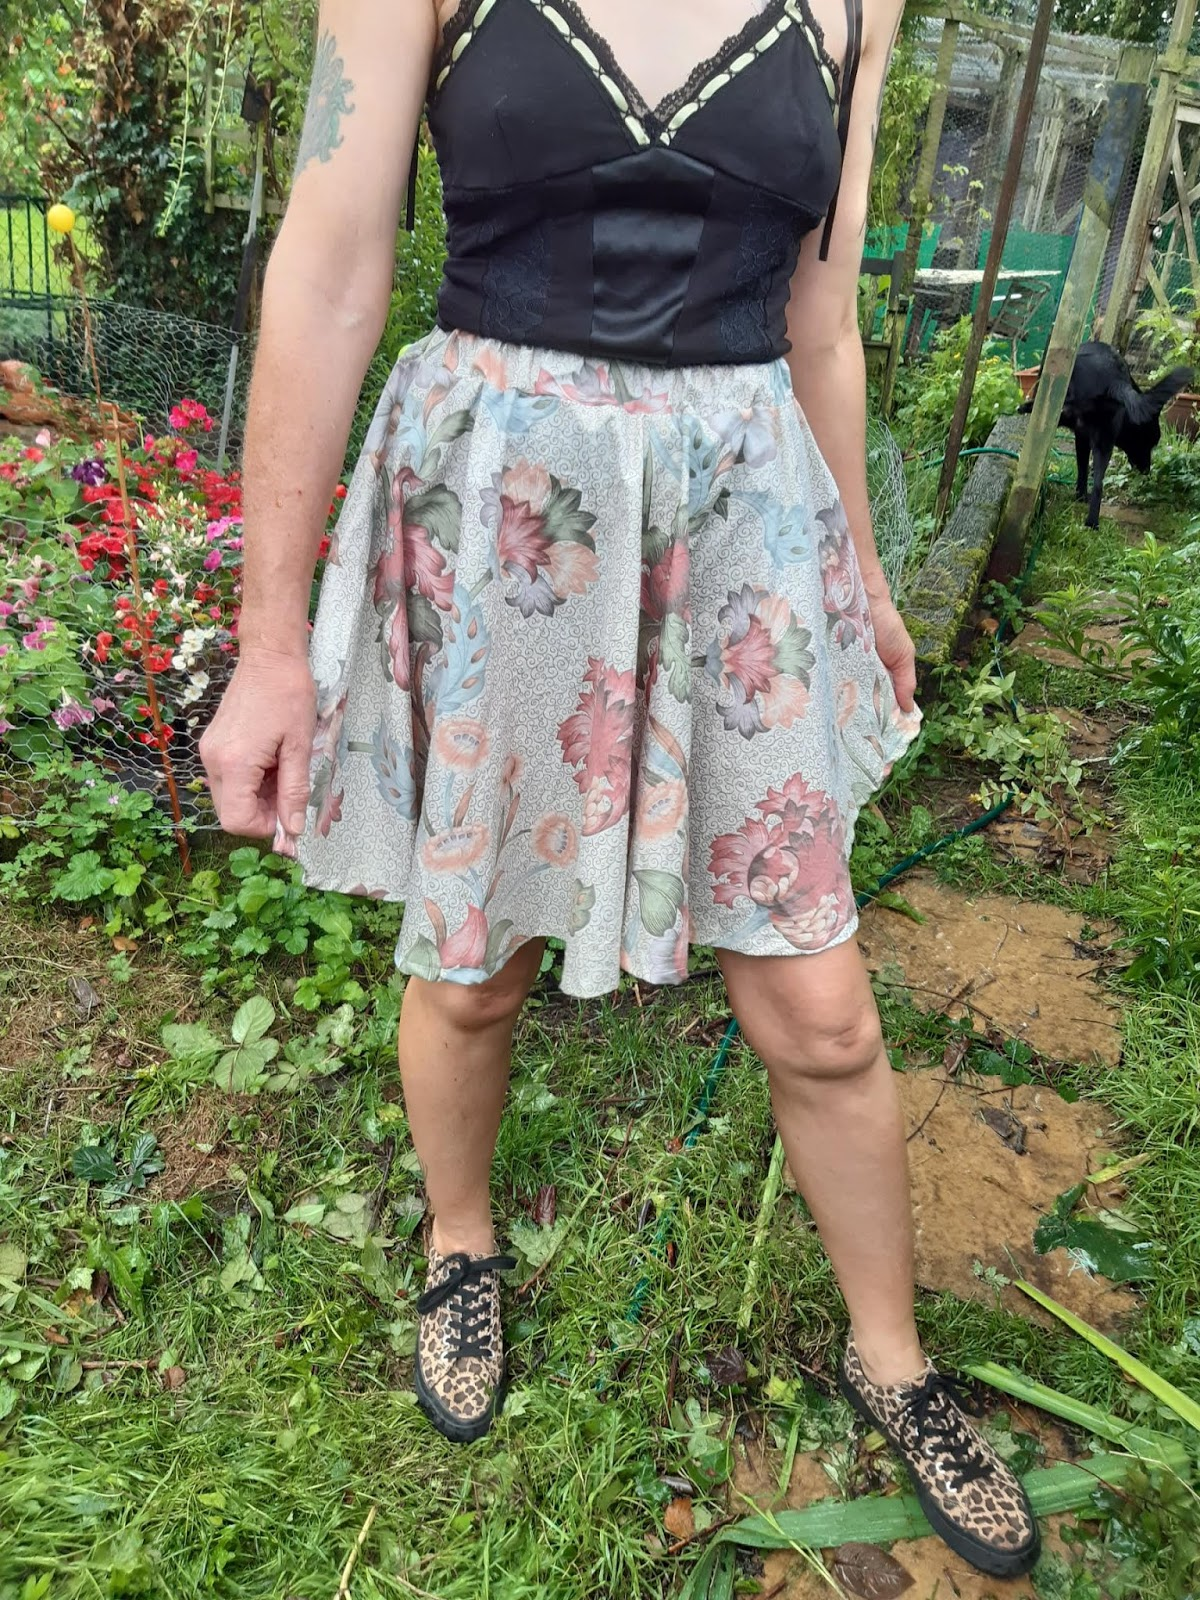 https://brackencrafts.blogspot.com/2019/07/how-to-make-self-drafted-elastic-waist.html